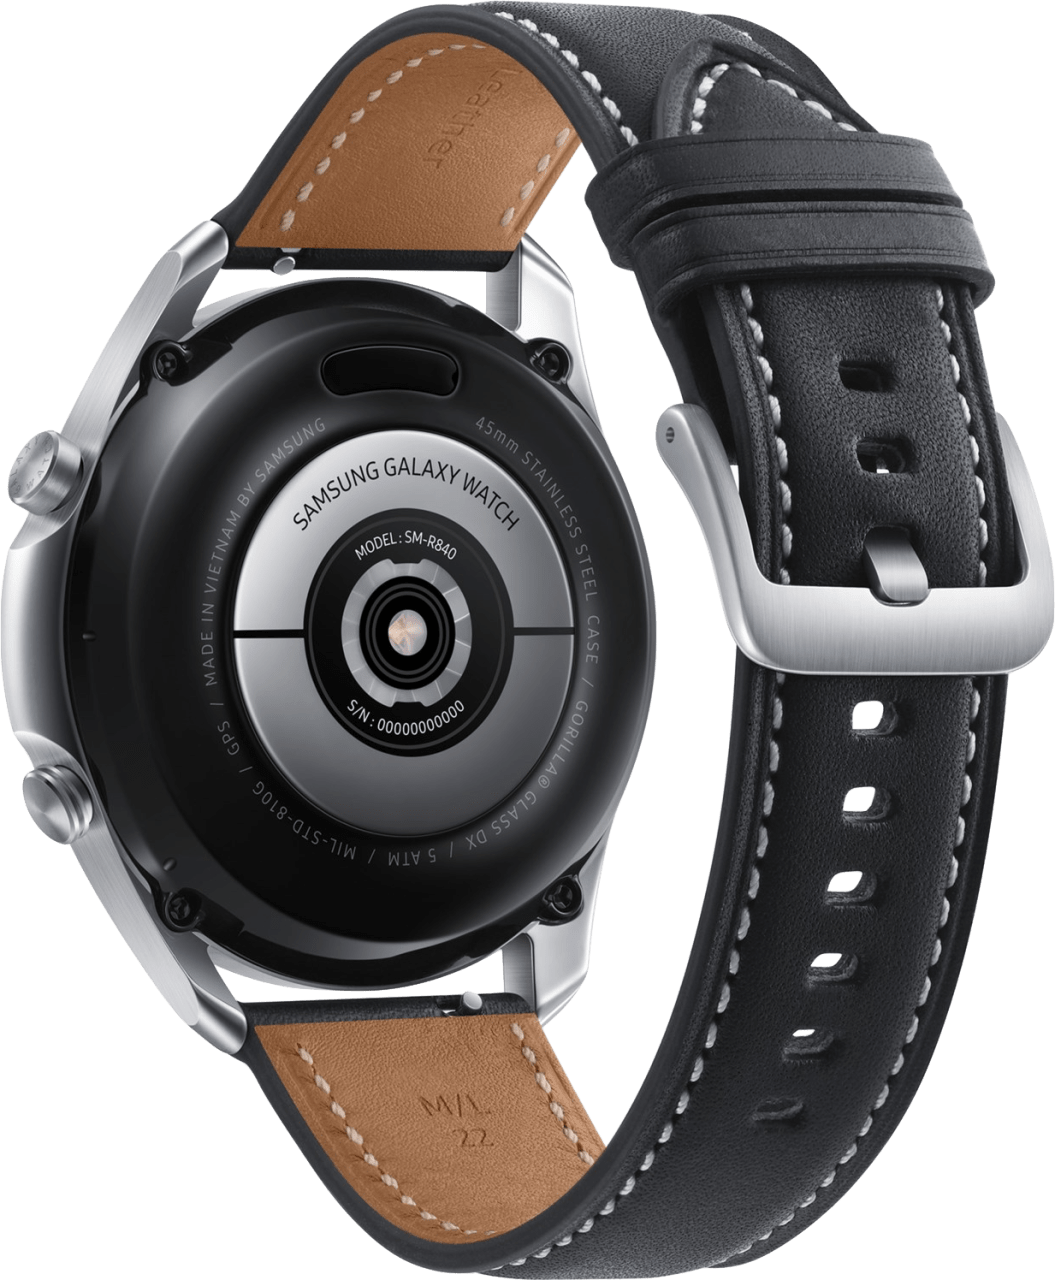 Mystic Zilver Samsung Galaxy Watch3, 45mm Stainless steel case, Real leather band.4